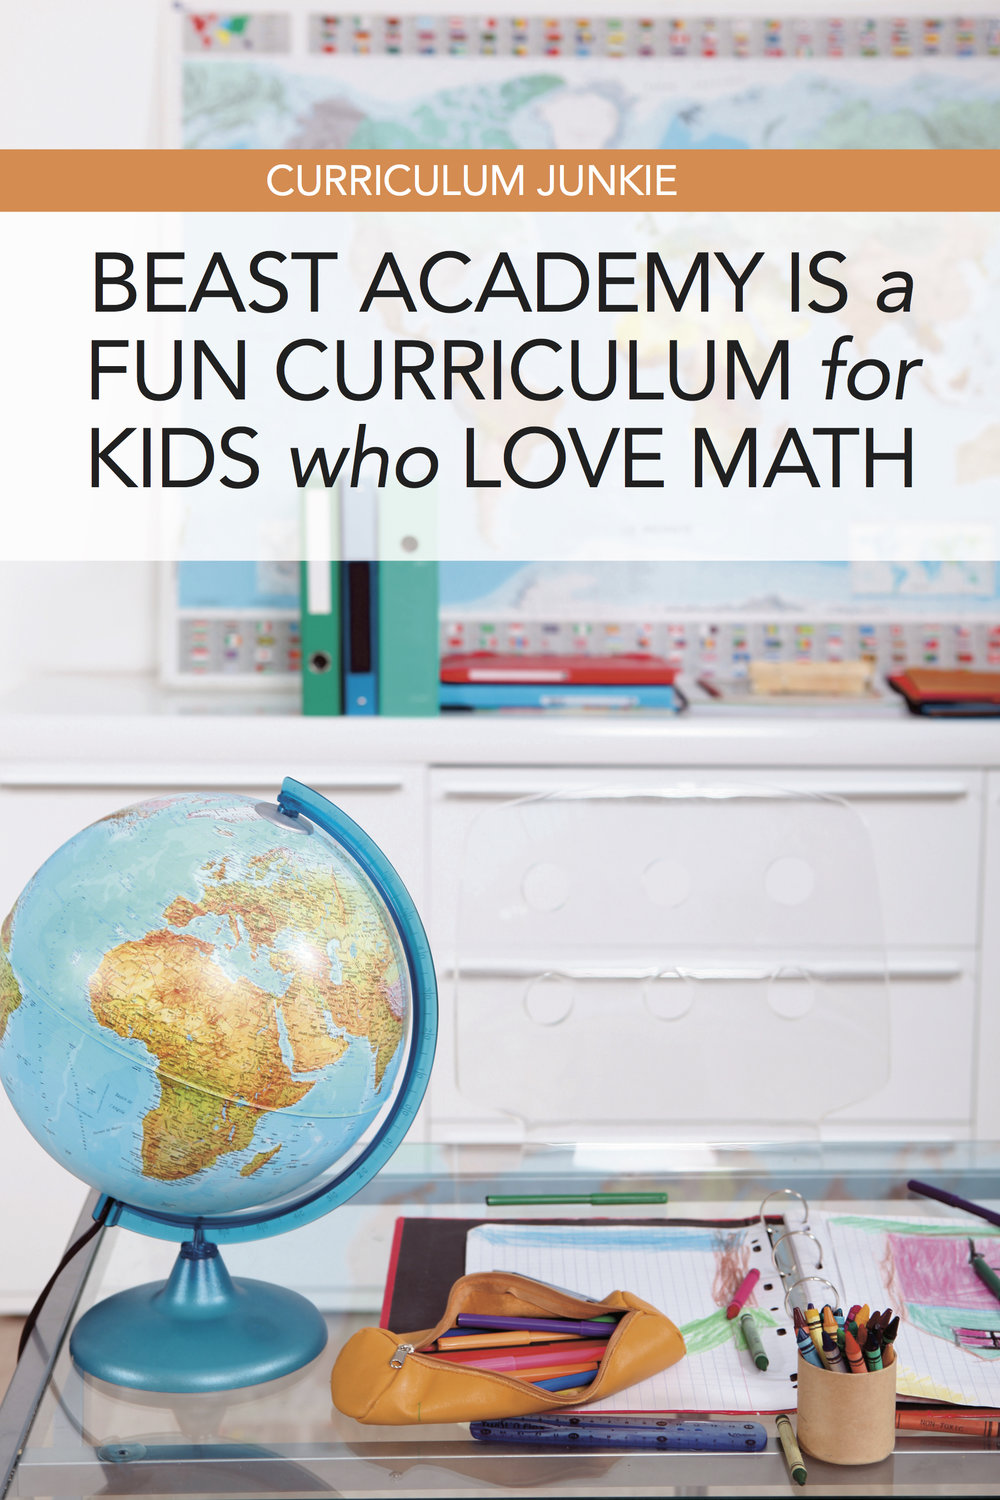 Review of Beast Academy for homeschool math. The gist: This is a smart, think-y elementary/early middle math curriculum for kids who like math. (With bonus comic strips!)